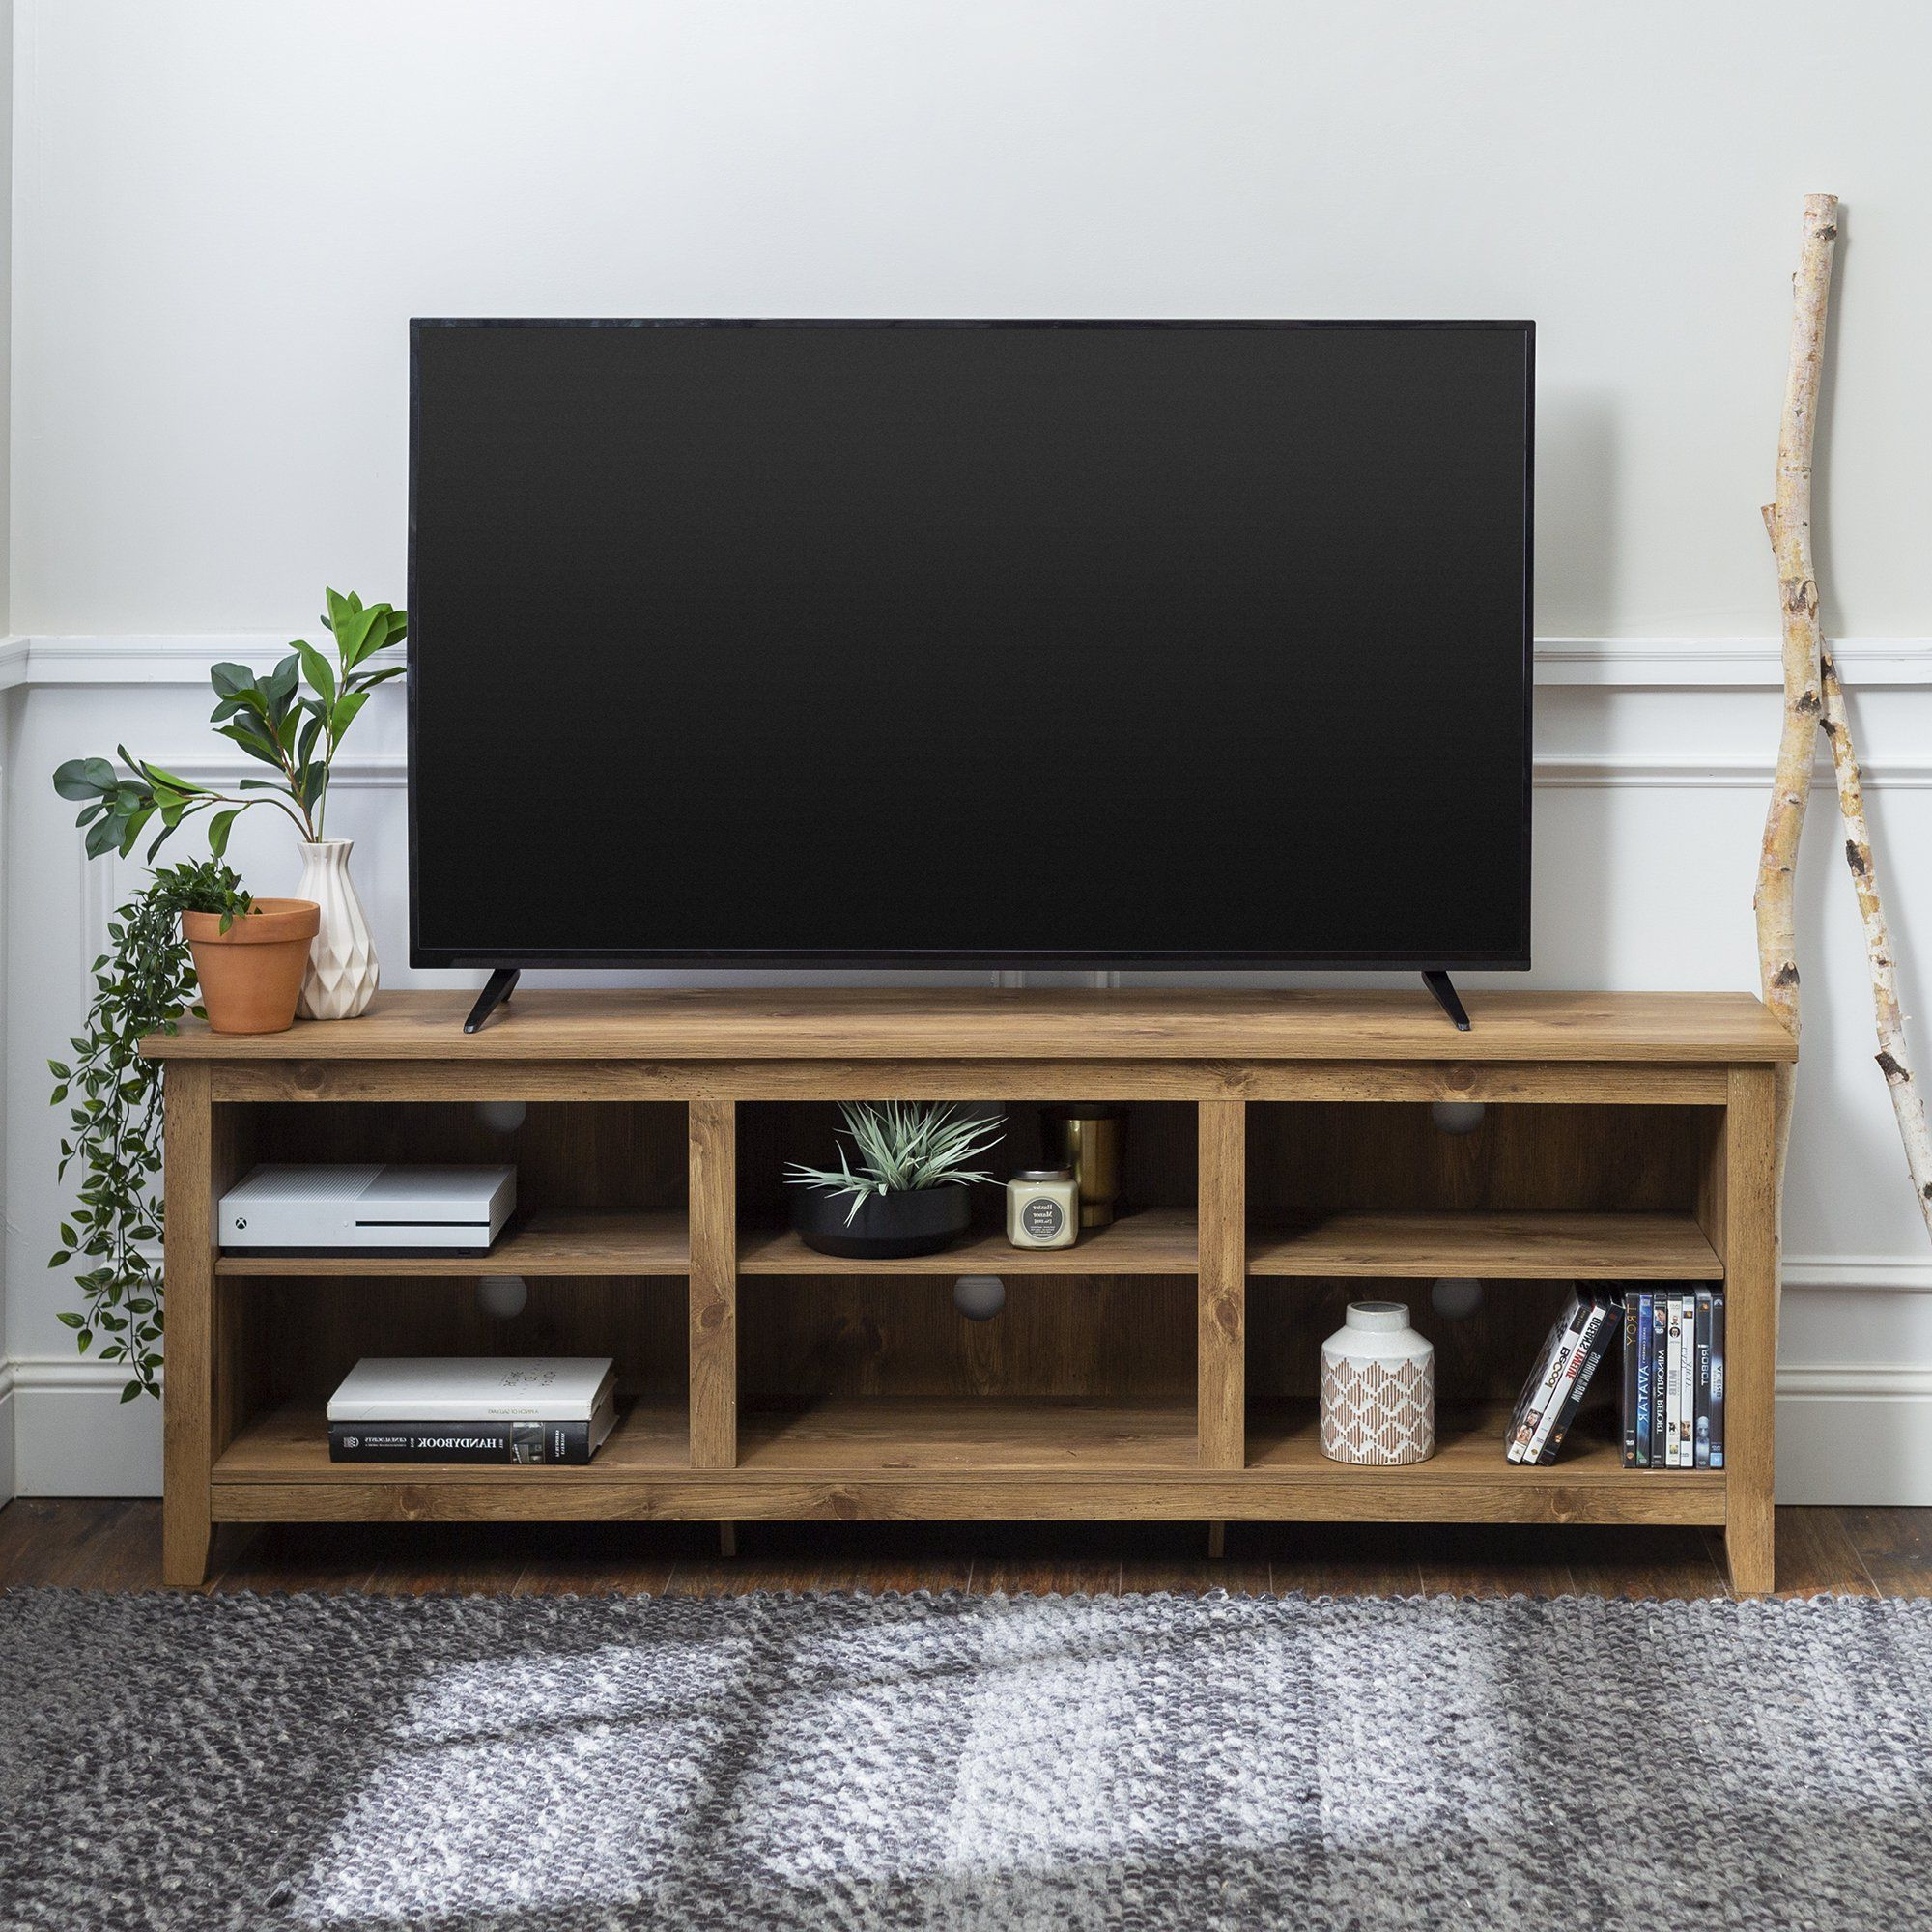 Woven Paths Open Storage Tv Stand For Tvs Up To 80 Inside Woven Paths Open Storage Tv Stands With Multiple Finishes (View 3 of 20)